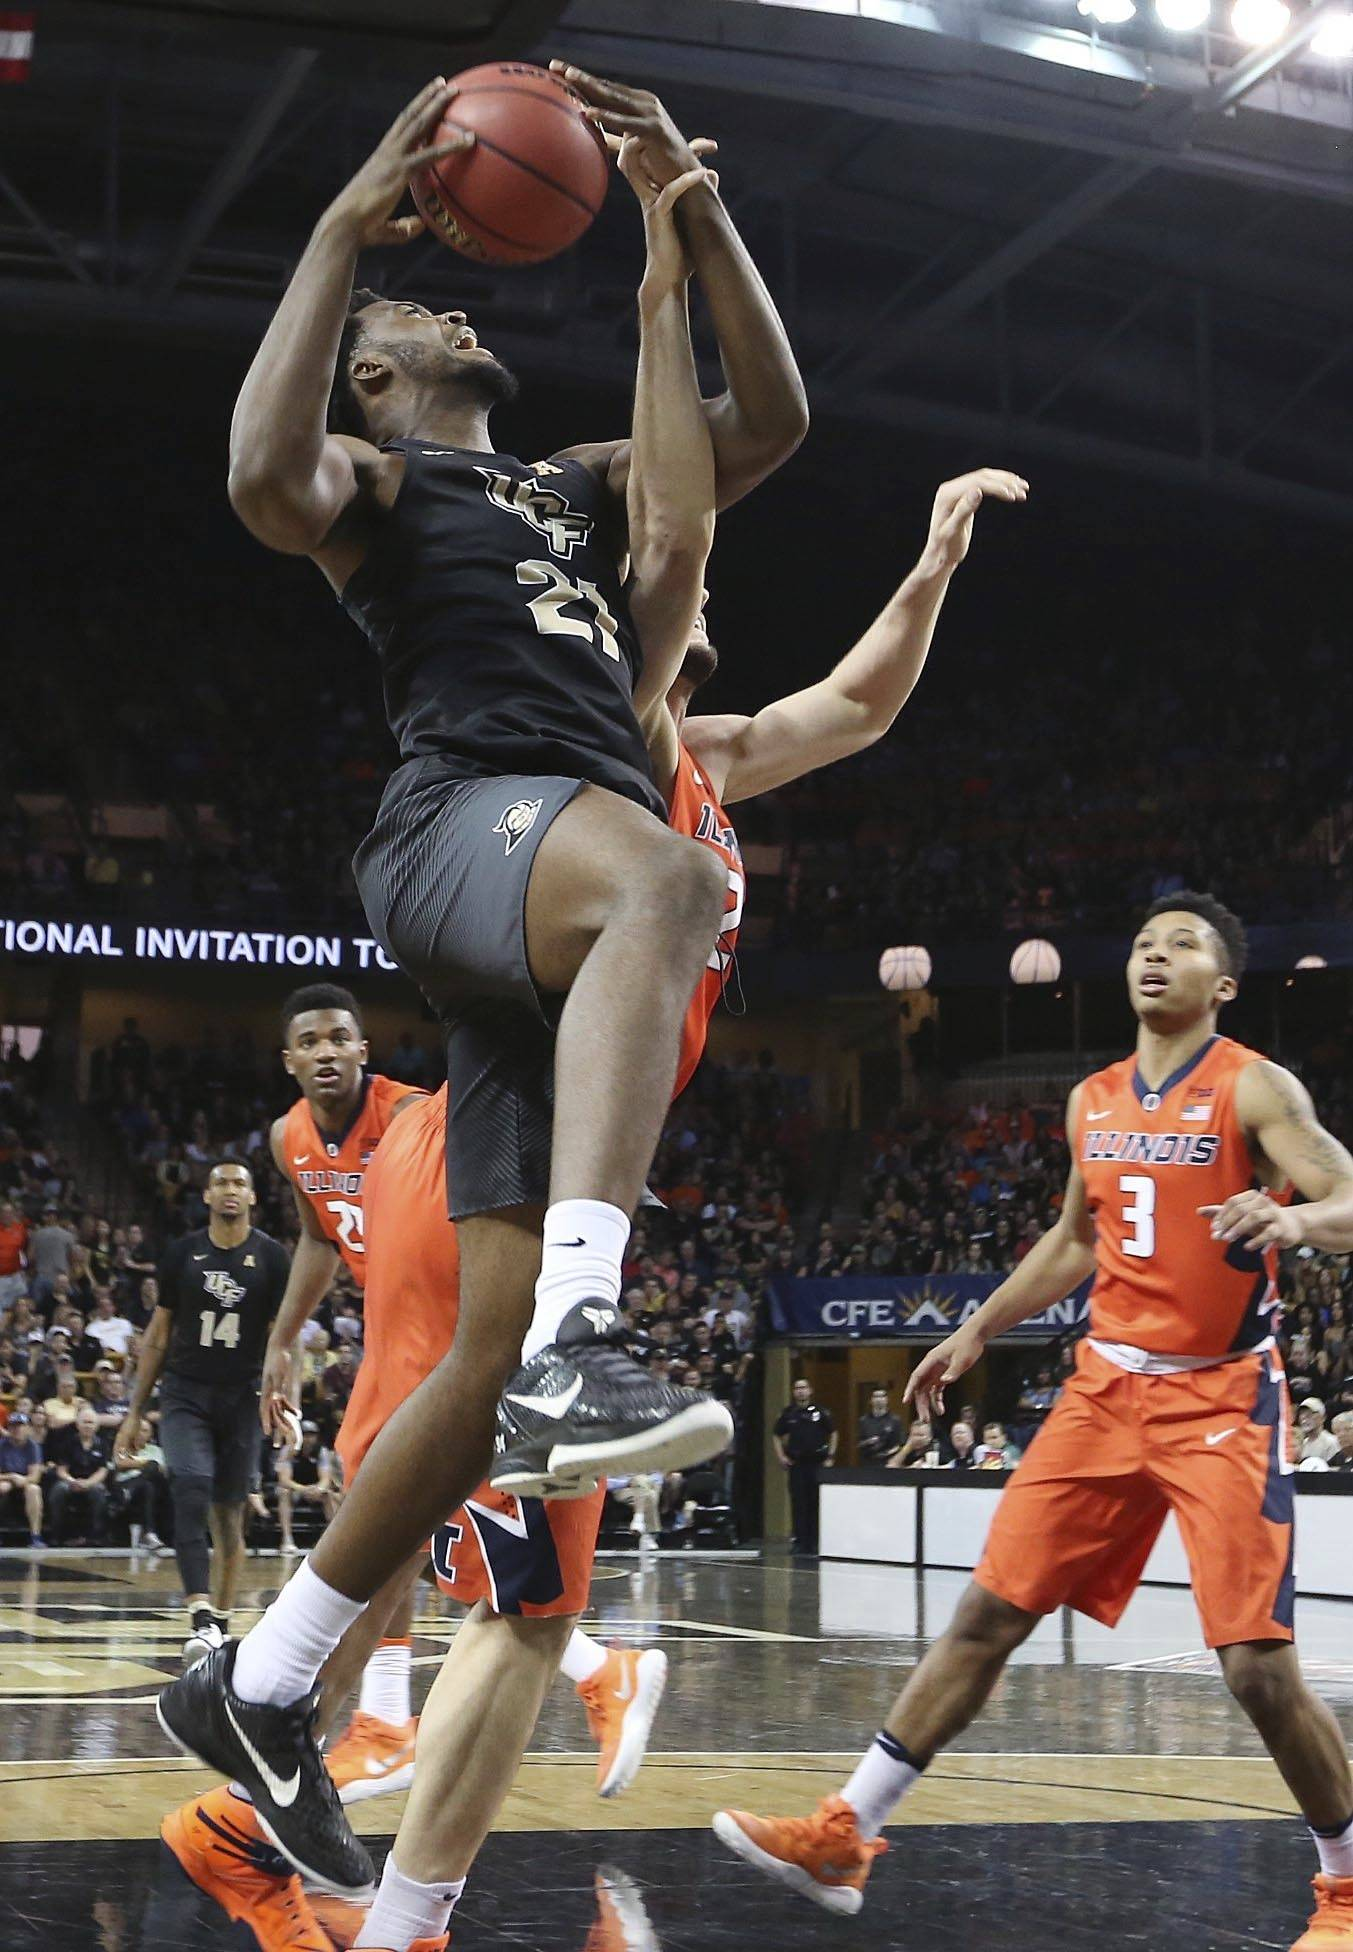 Central Florida forward Chad Brown (21) scores over Illinois defenders including guard Te'Jon Lucas (3) during an NCAA college basketball game of the NIT in Orlando, Fla., Wednesday, March 22, 2017. (Stephen M. Dowell/Orlando Sentinel via AP)